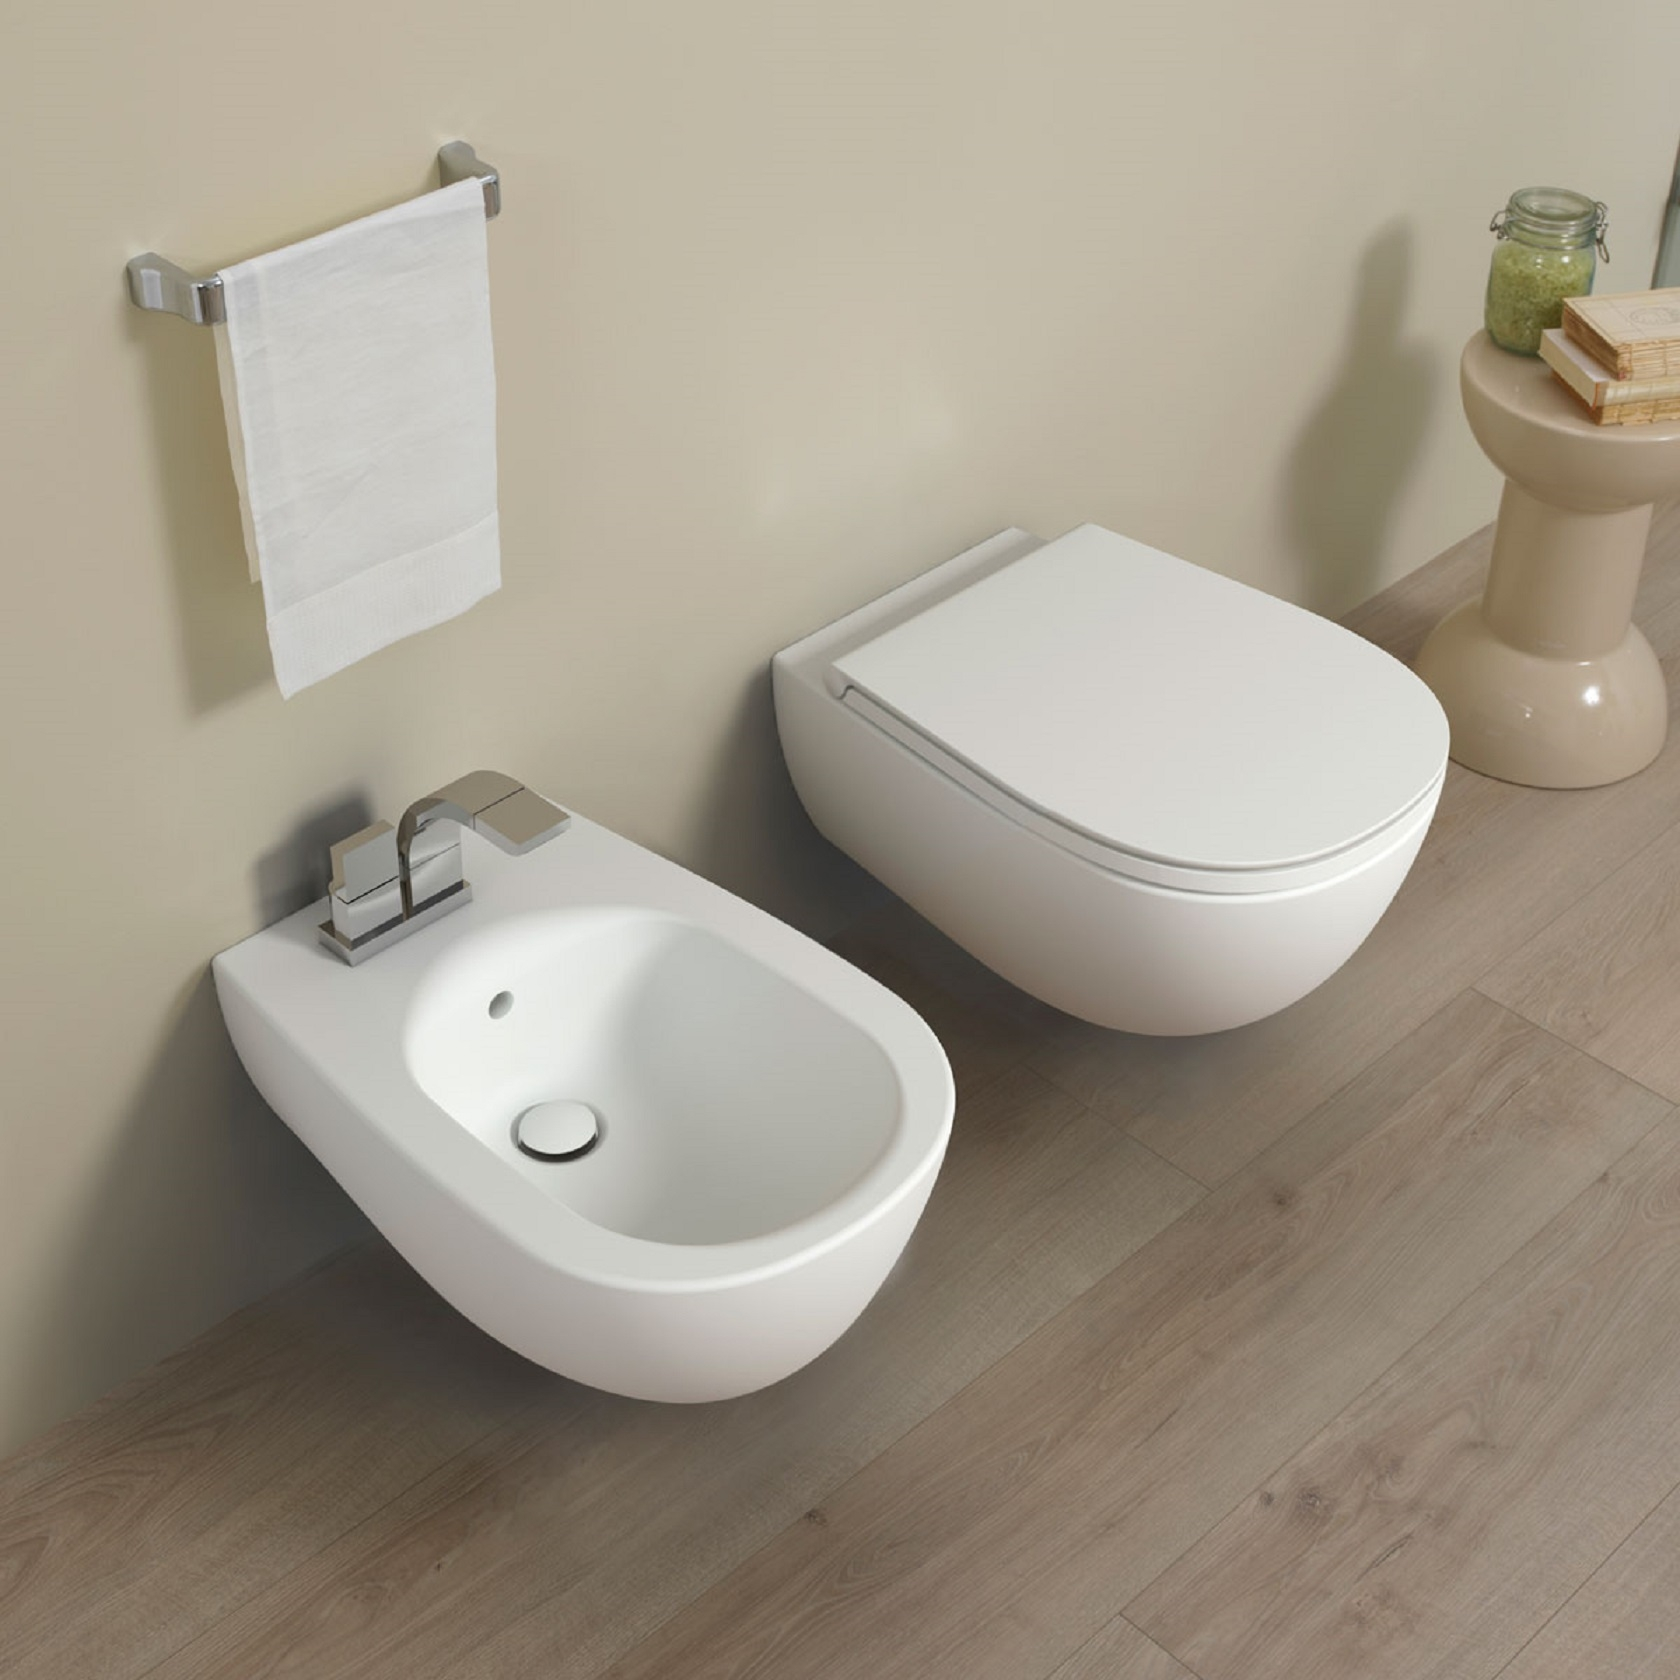 FLAMINIA IO 2.0 WALL HUNG WC GOCLEAN - TattaHome